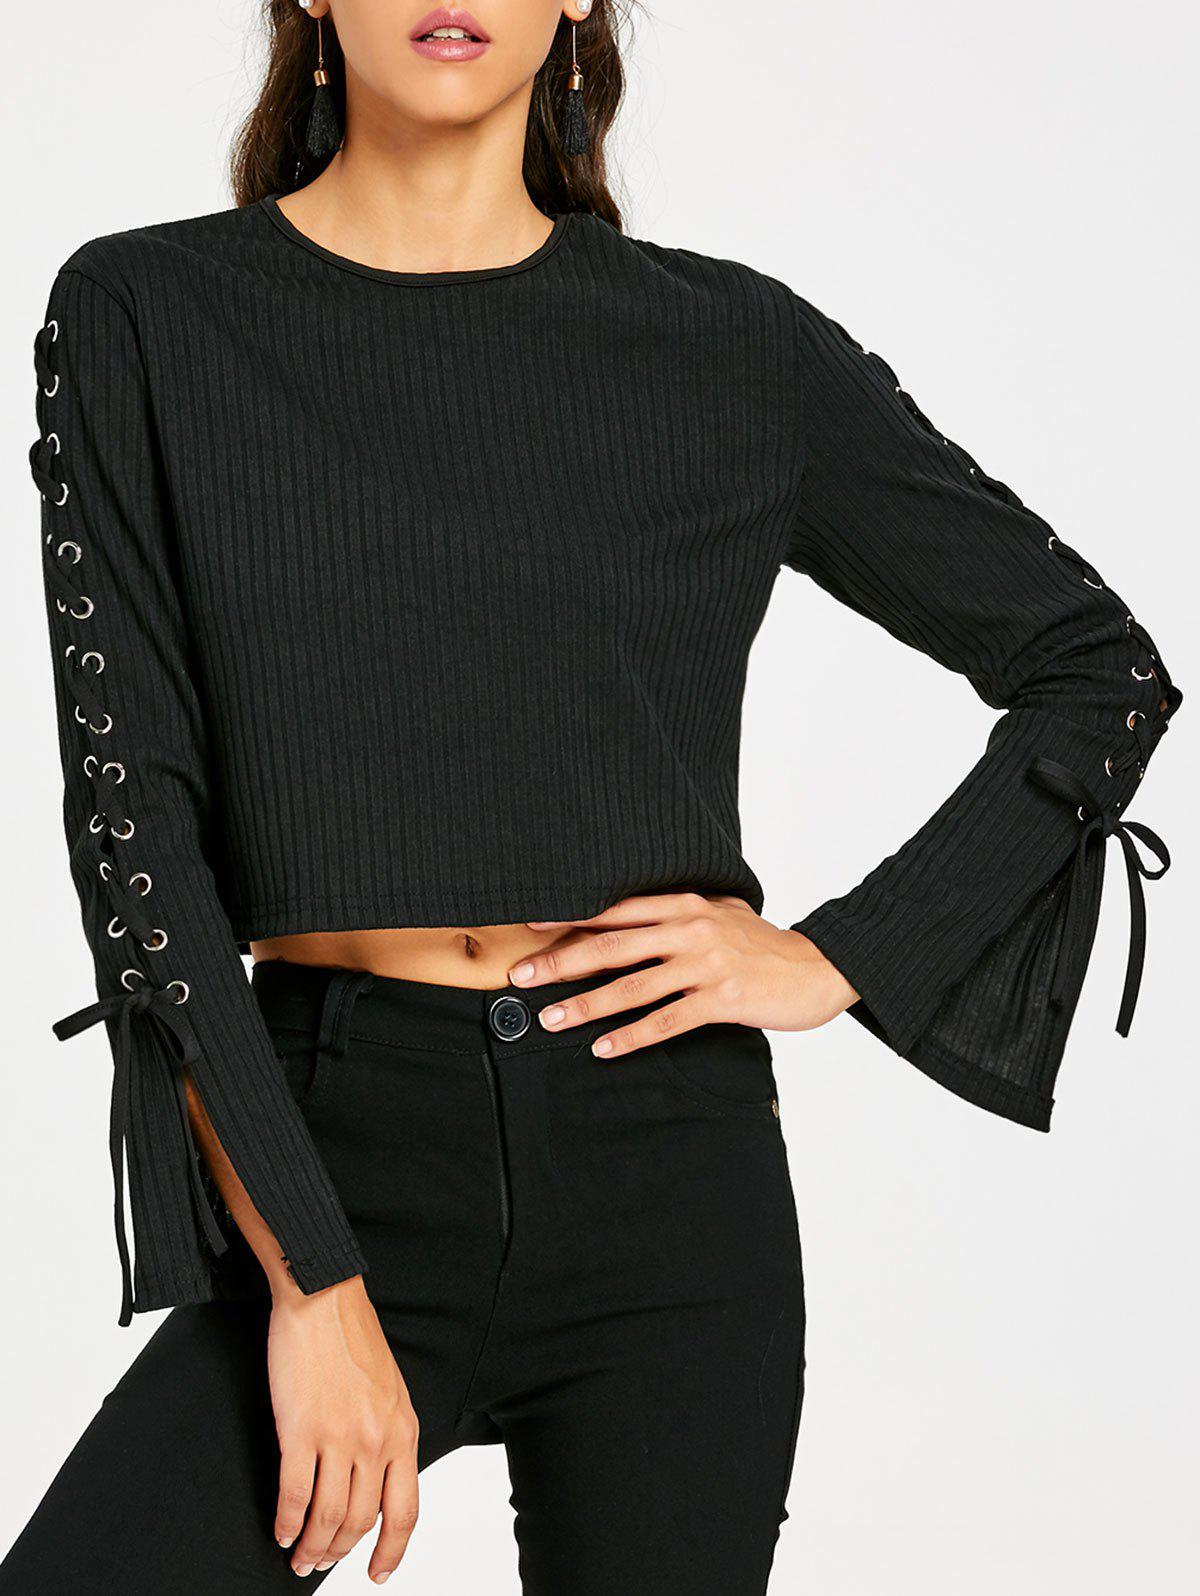 Lace Up Sleeve Ribbed Crop Top lace up long sleeve ribbed crop top